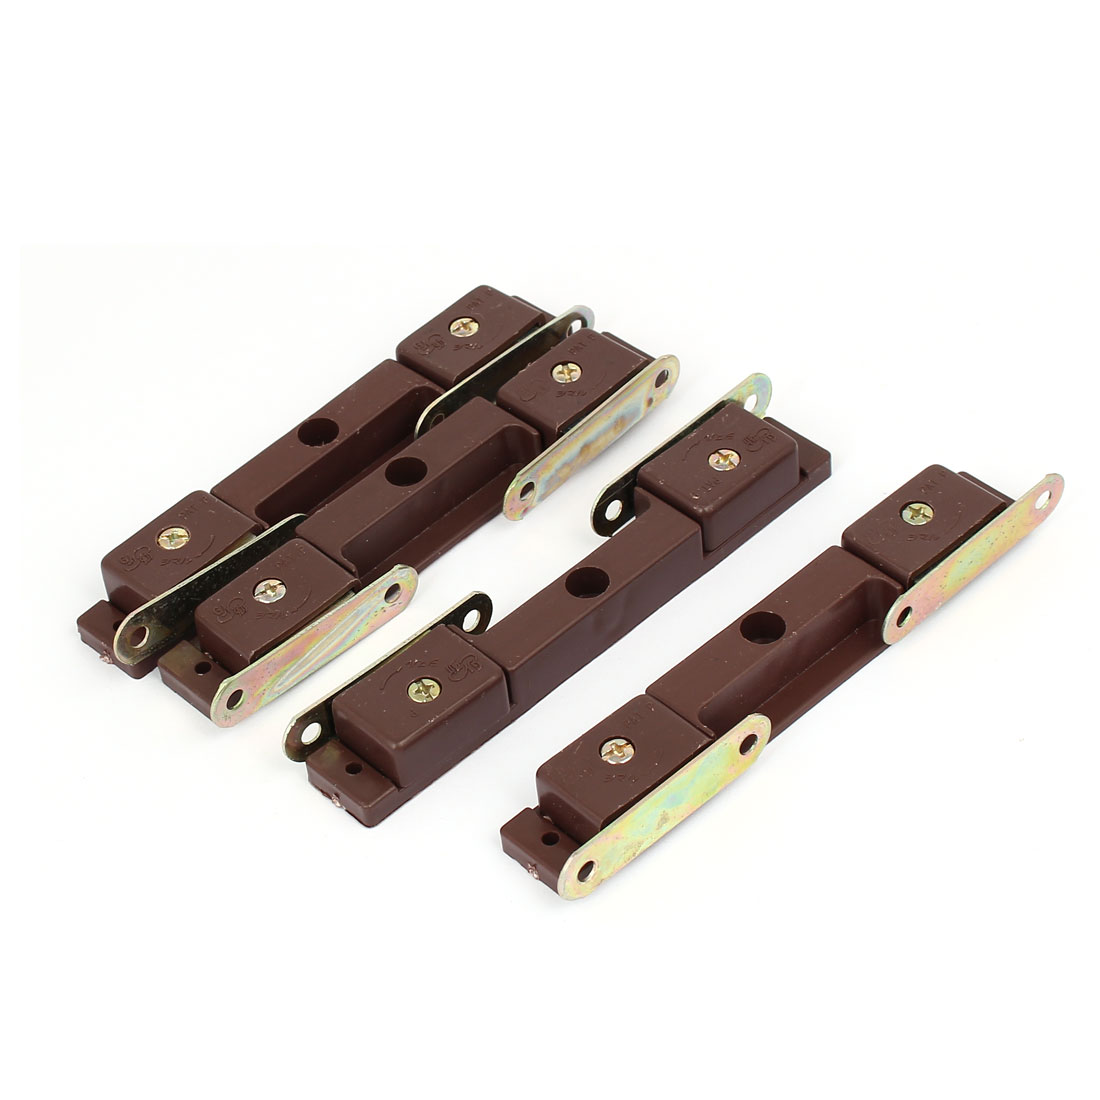 Cabinet Plastic Magnetic Double Catch Door Latch Brown 130mm x 20mm x 15mm